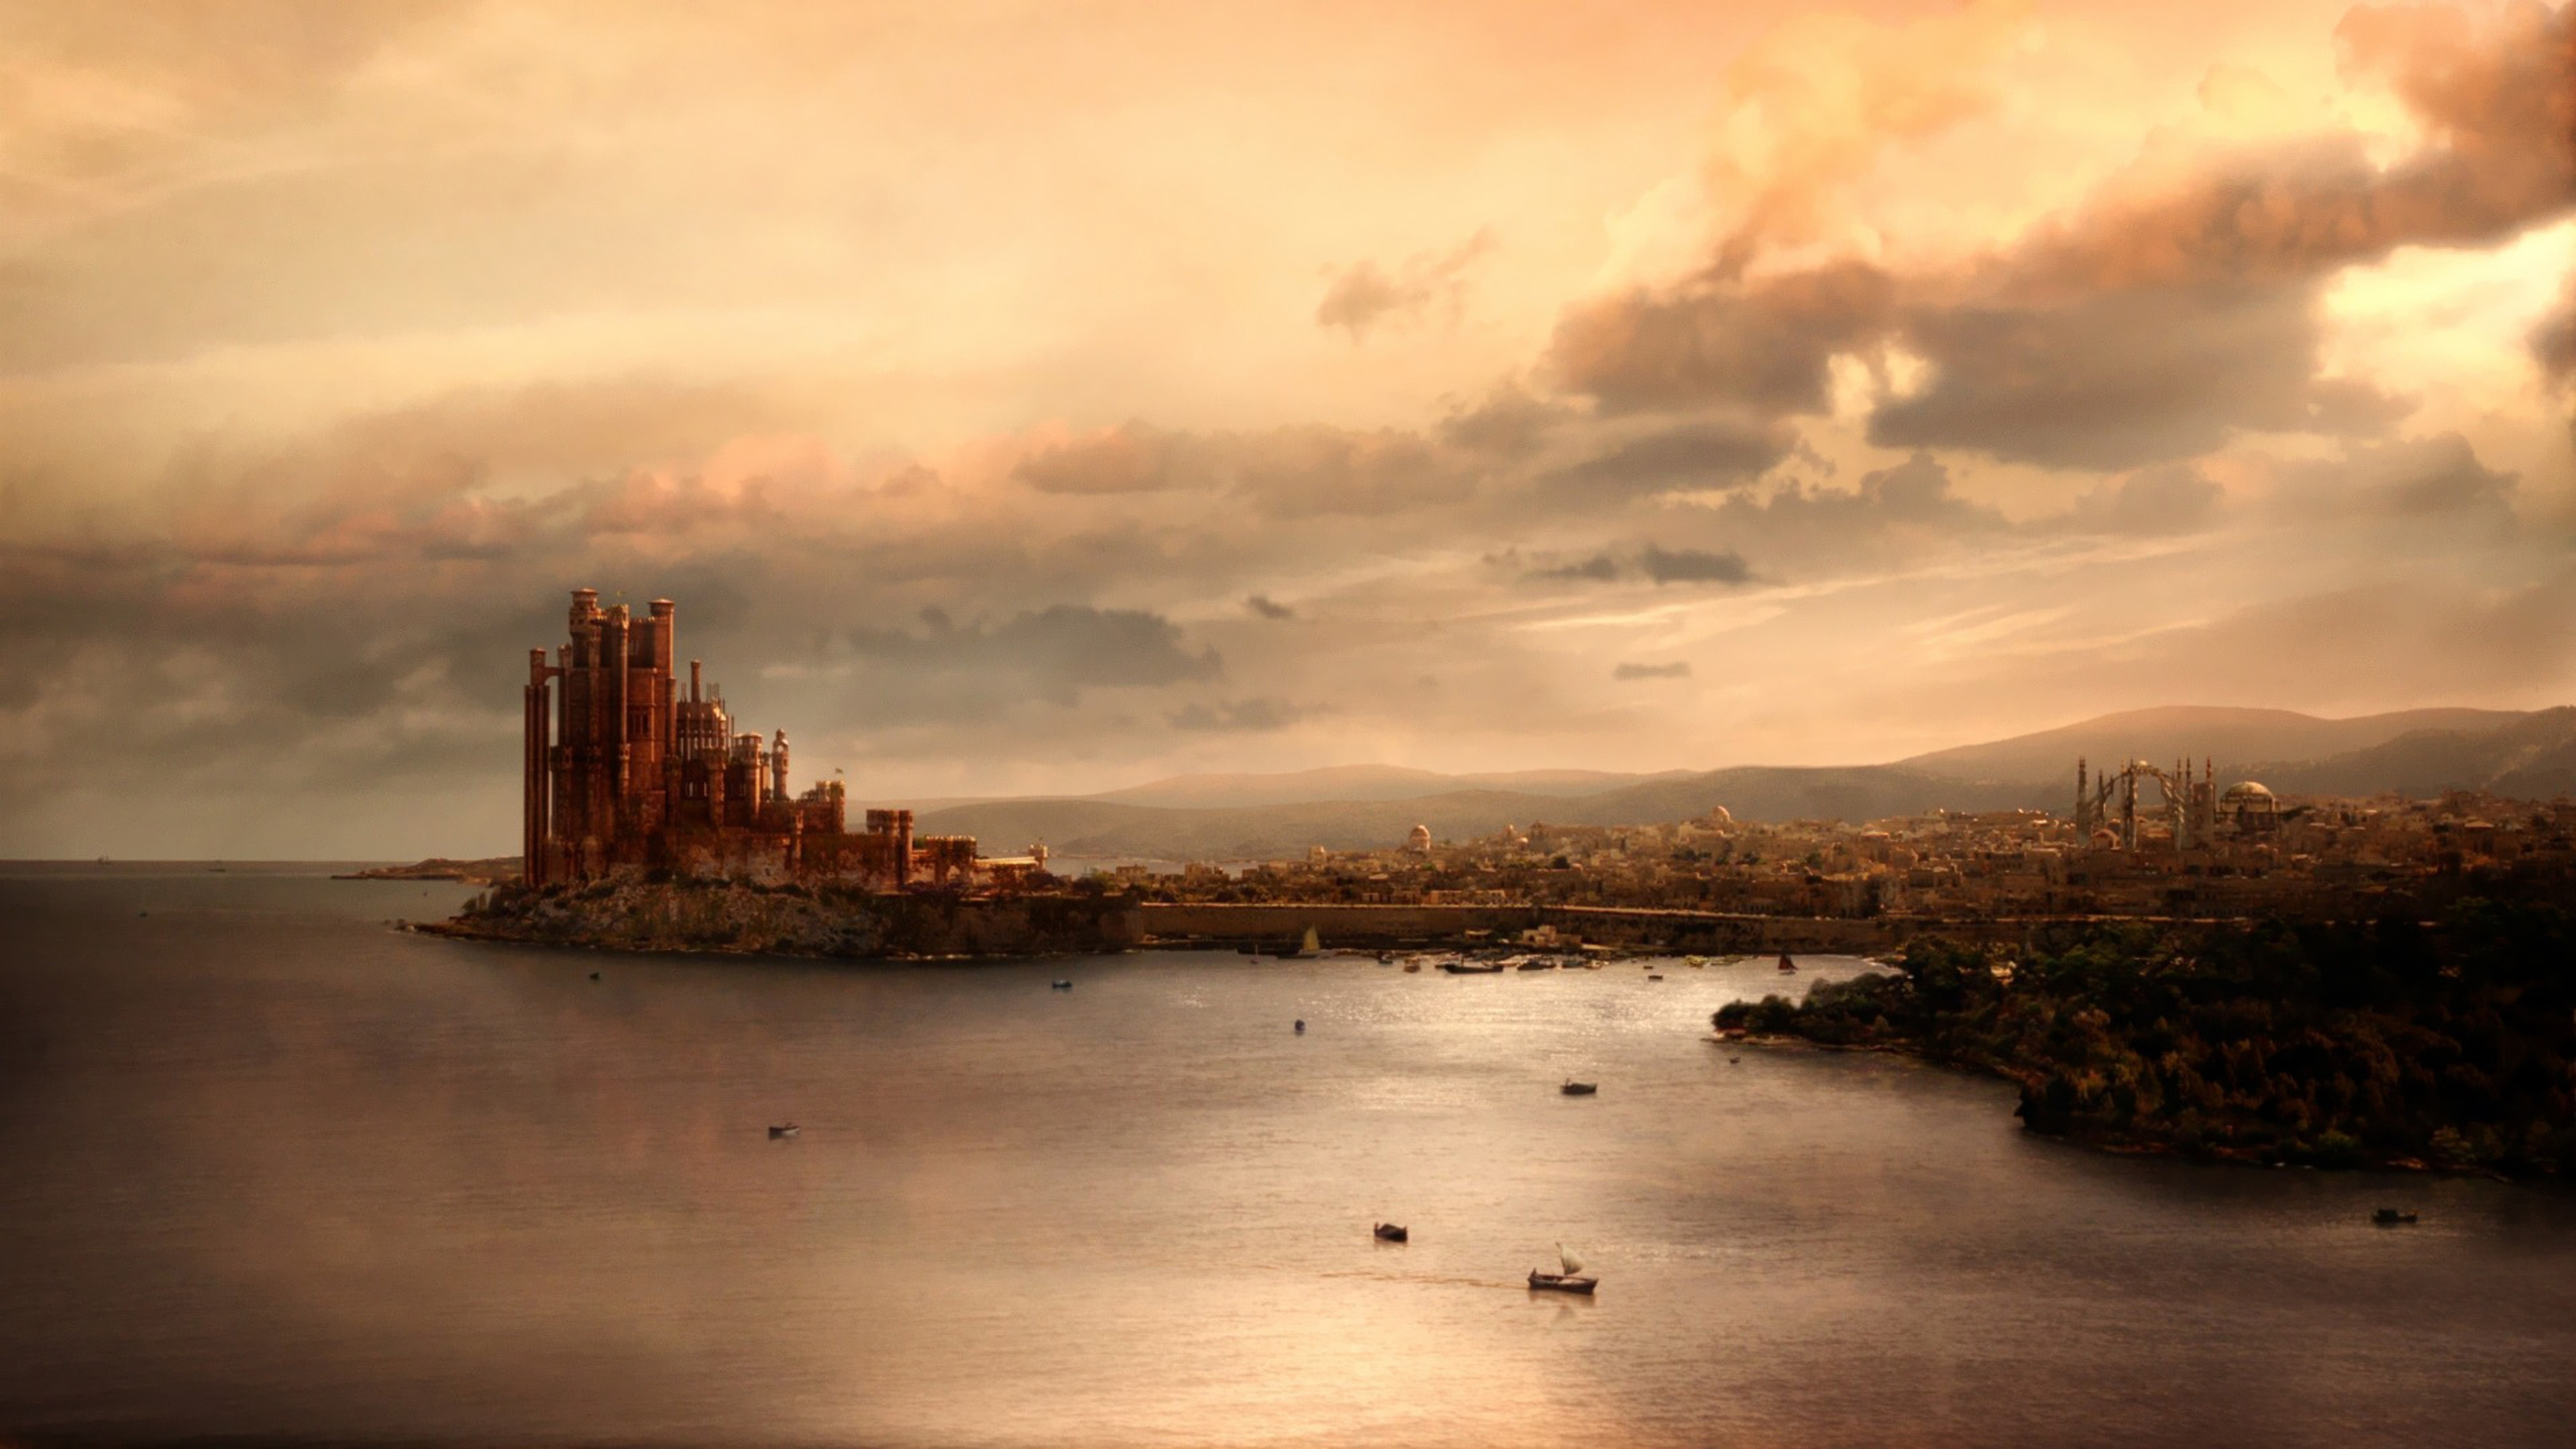 Game of Thrones Backgrounds 4K Download